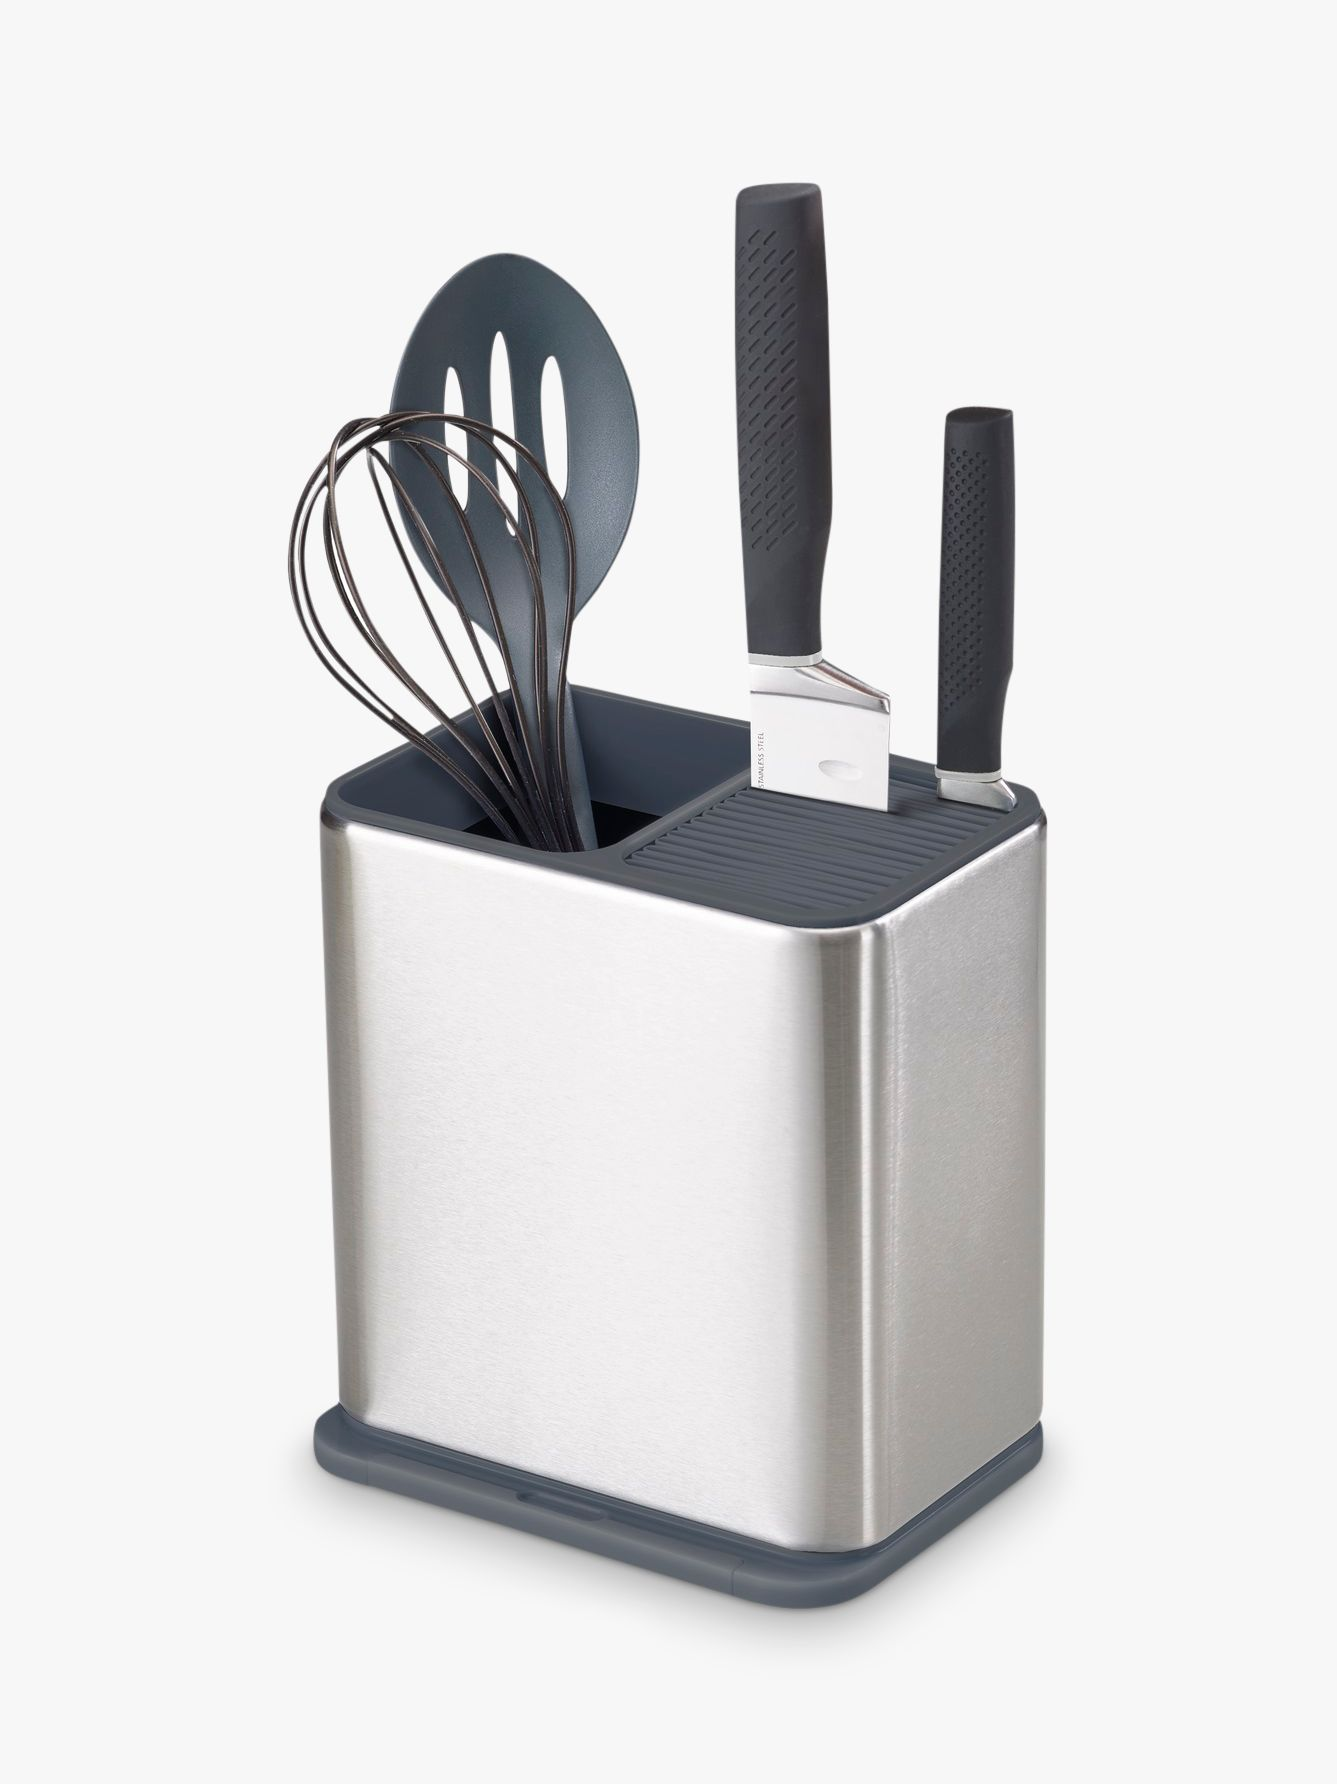 Joseph Joseph Joseph Joseph Surface Utensil Holder, Stainless Steel